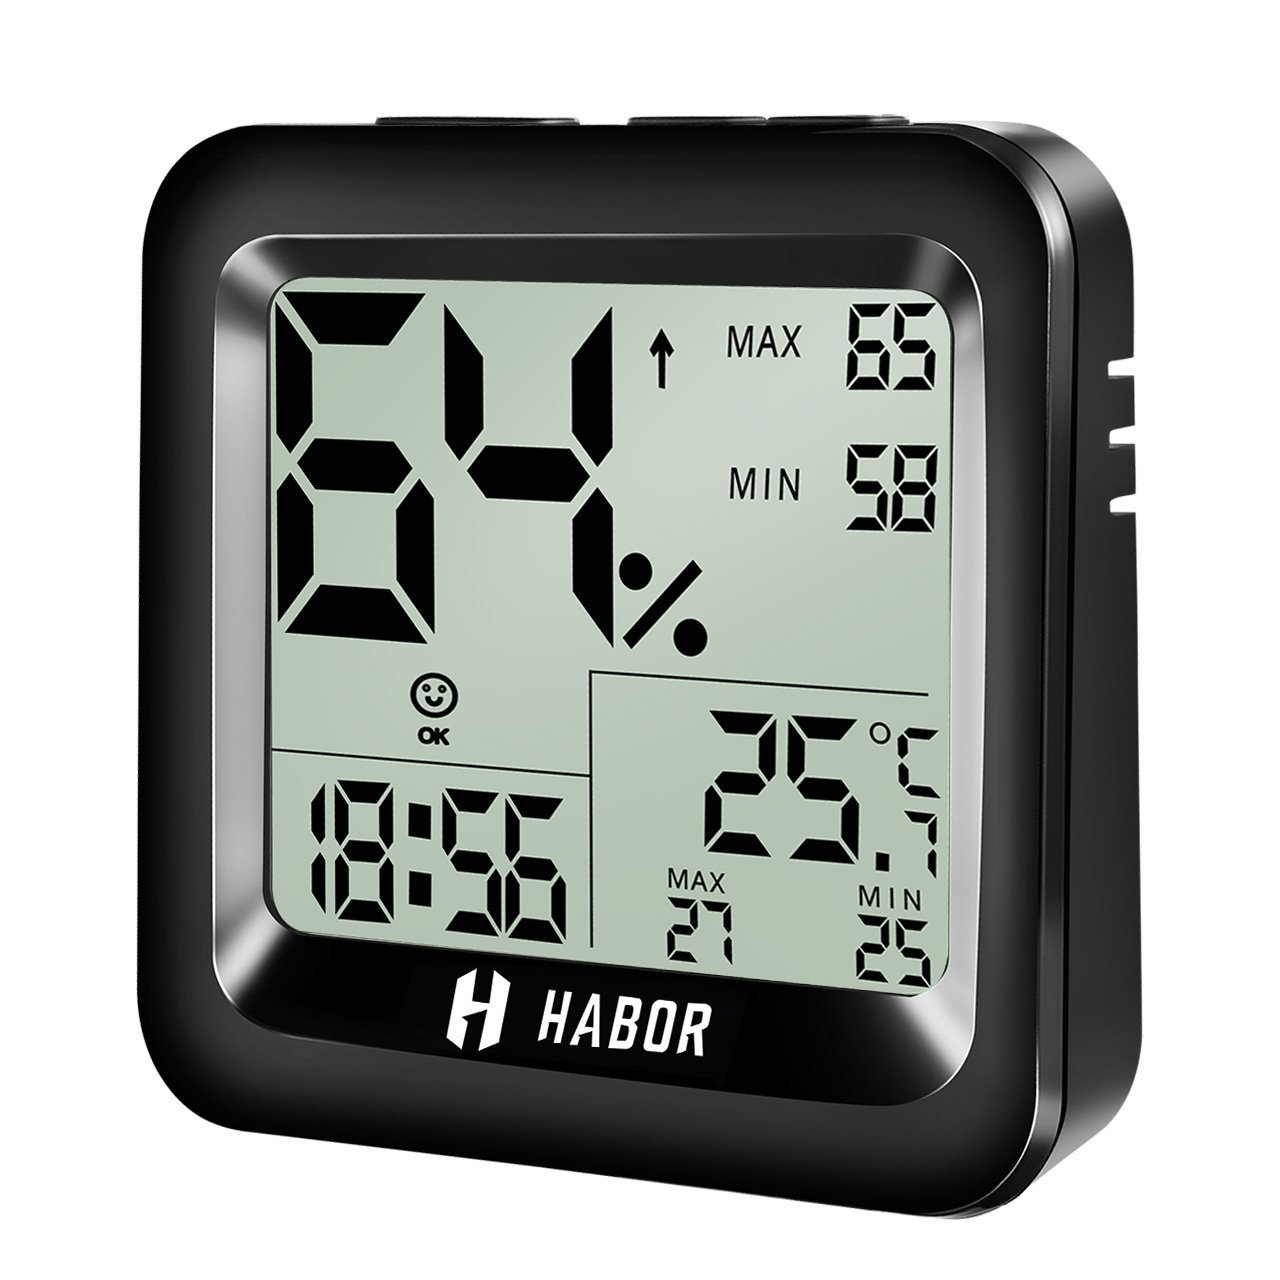 Habor Digital Hygrometer Thermometer with High Accuracy Indoor Temperature Humidity Monitor with Comfort Level Icon Table Standing Wall Hanging